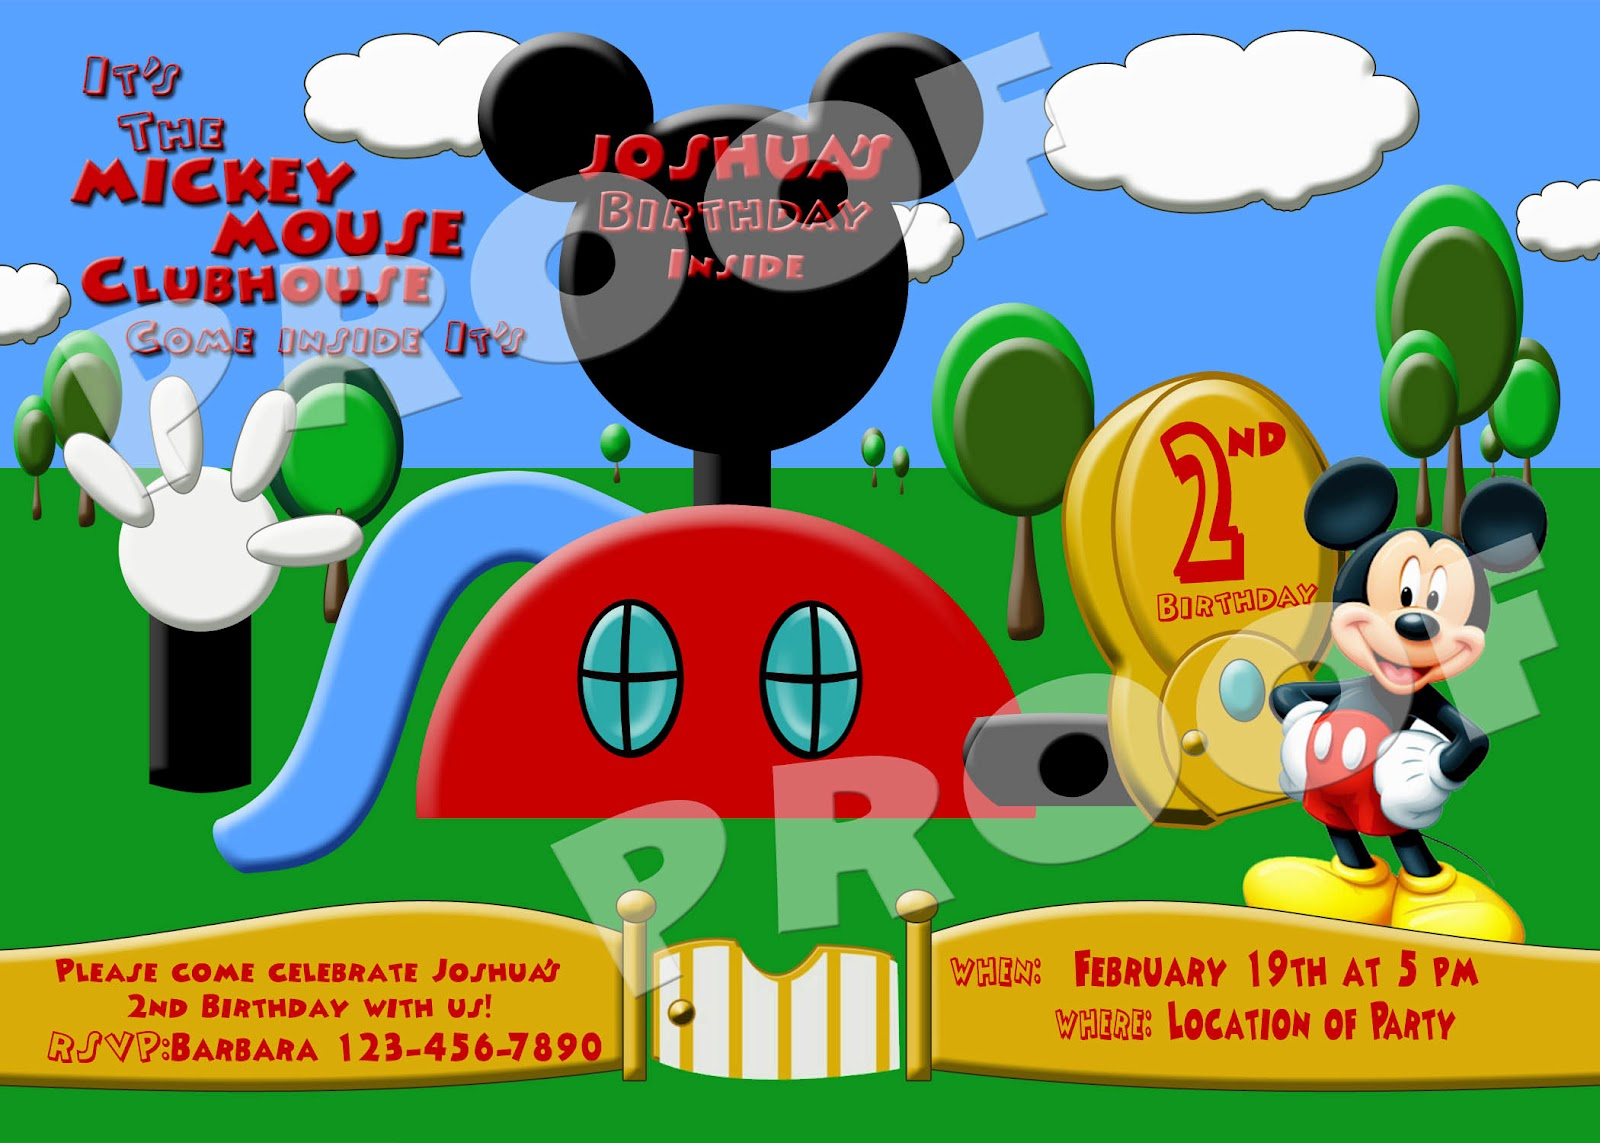 Fanci Prints by Tiffany: Mickey Mouse Clubhouse - Birthday Party Invitations